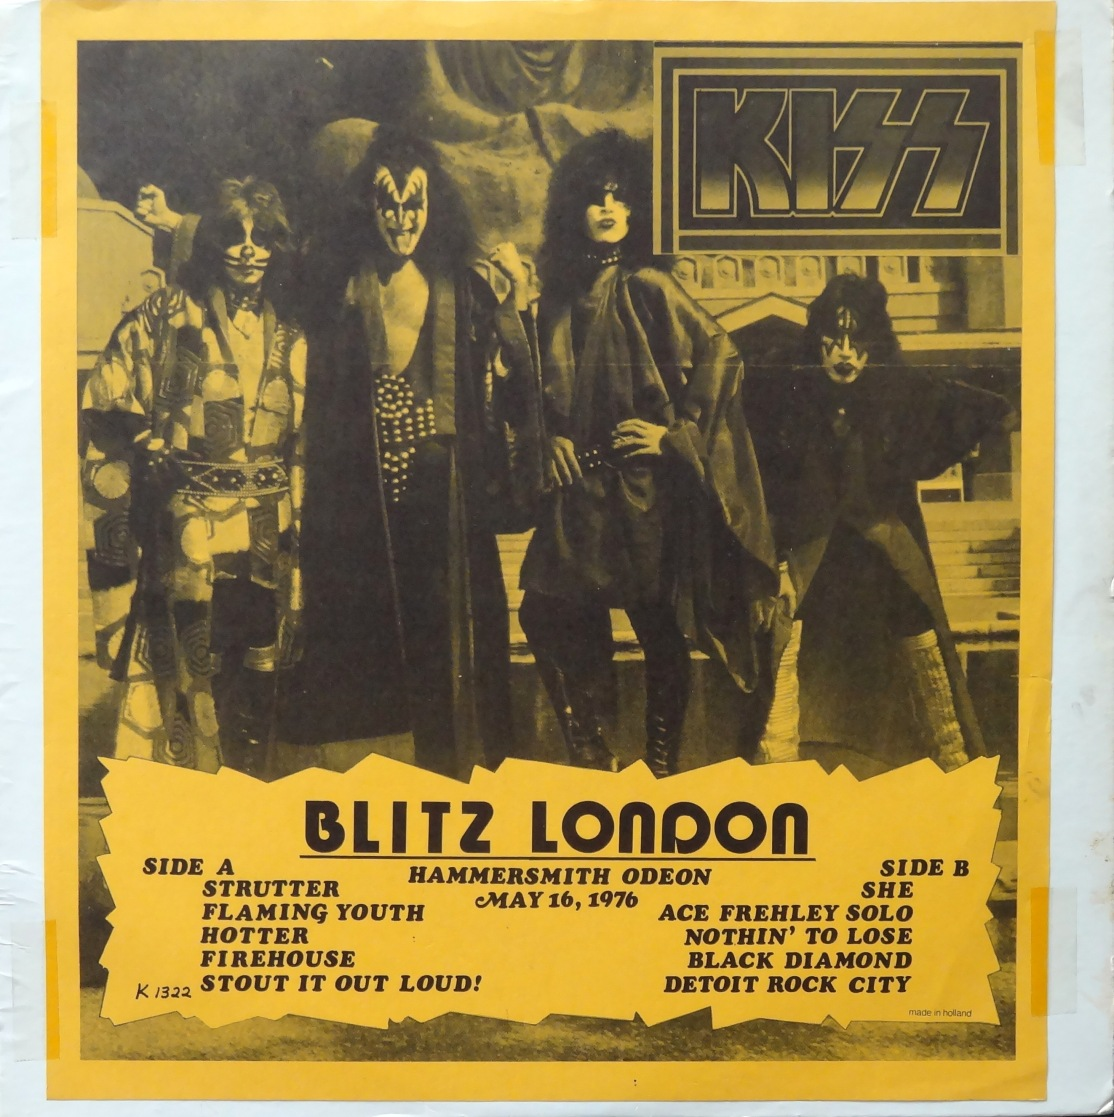 KISS Blitz London front